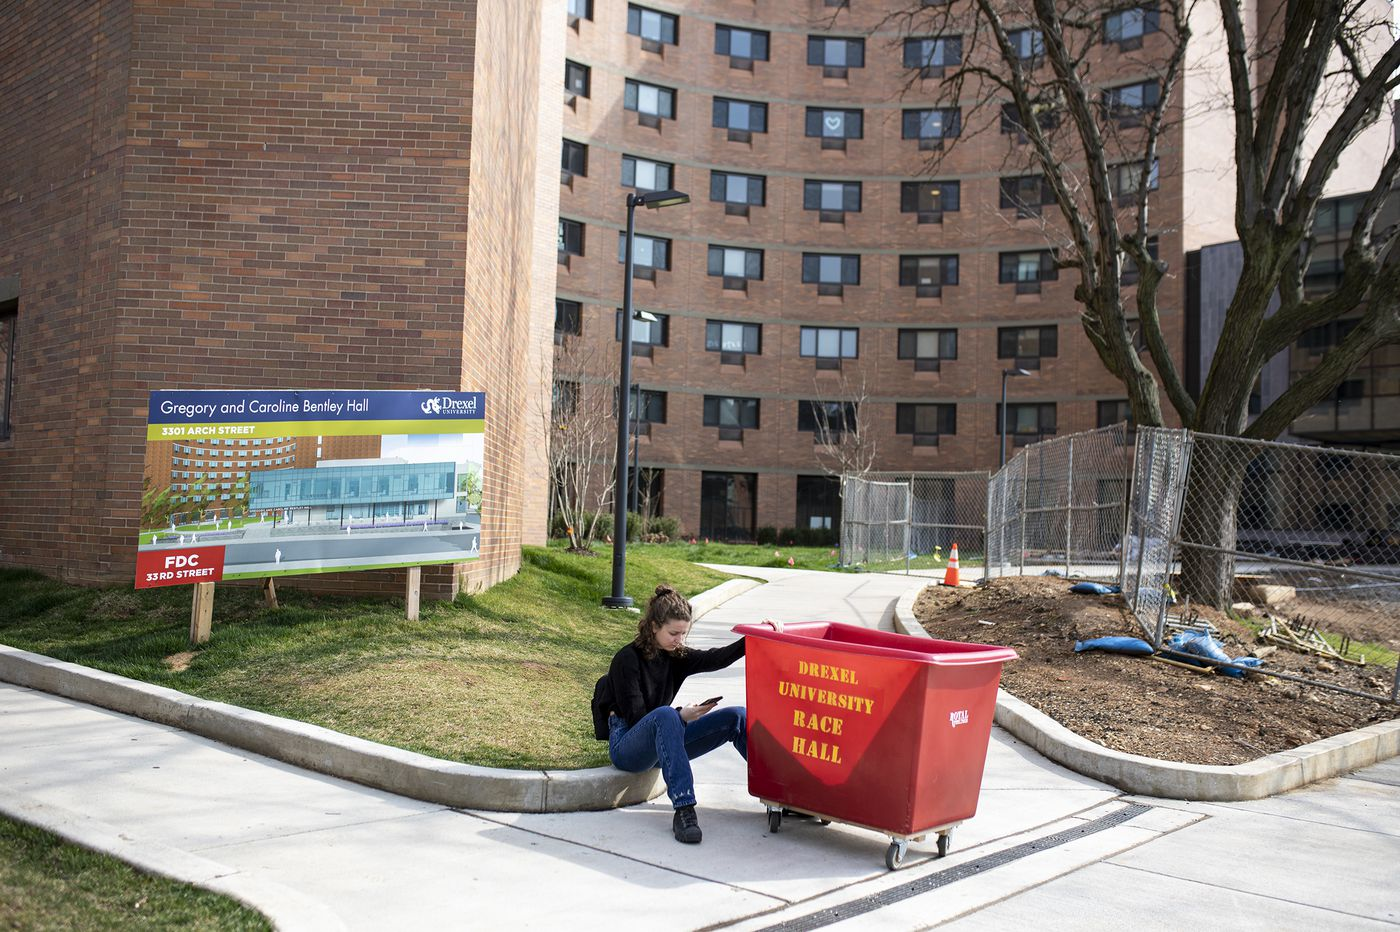 Gov. Wolf's order forces Drexel students to move out with little notice